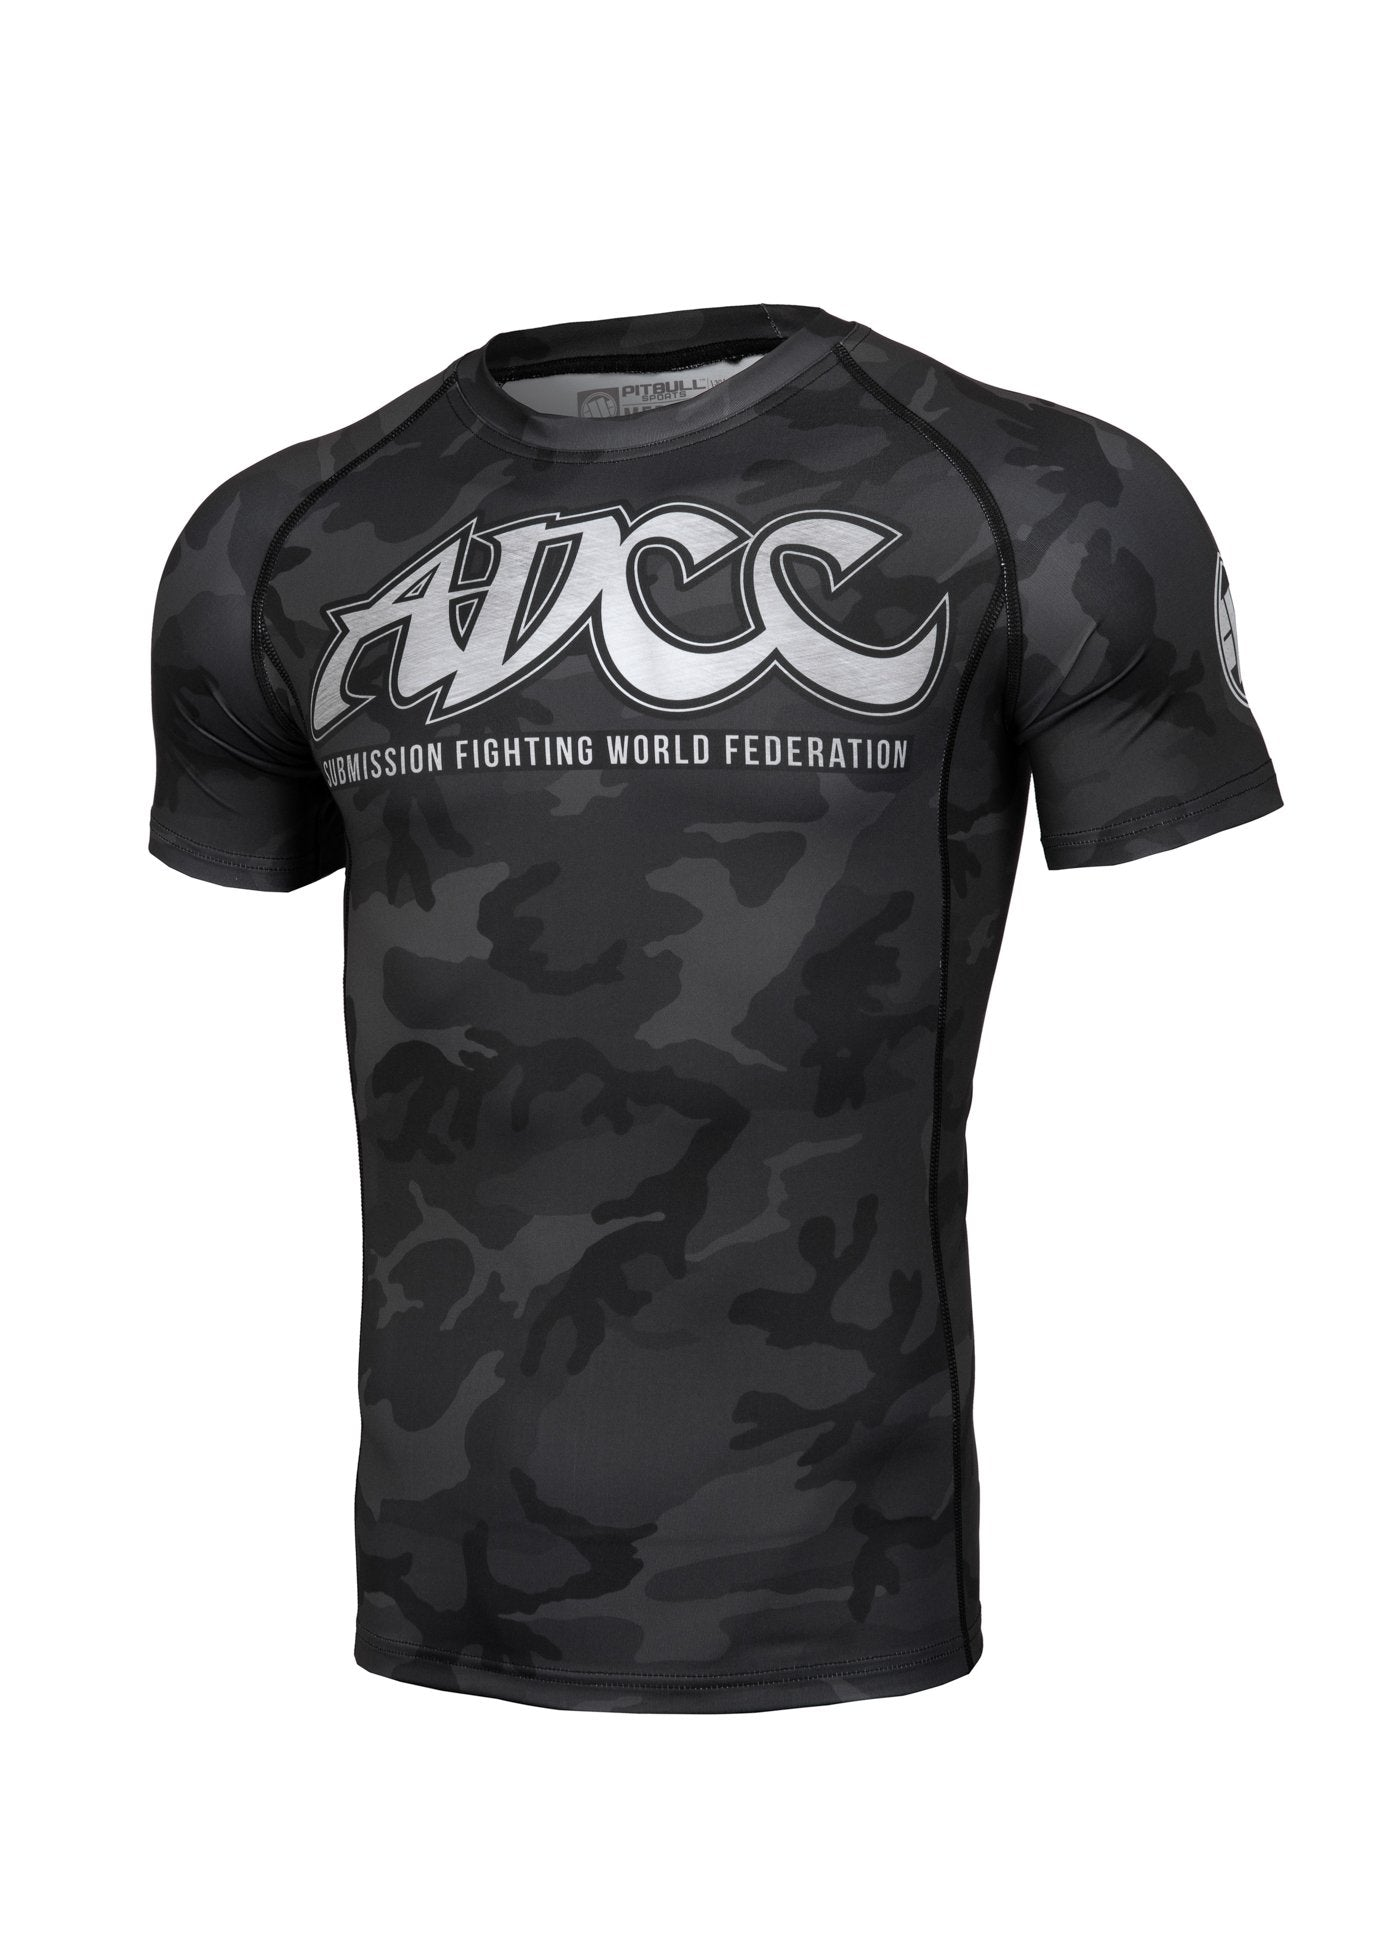 ADCC All Black Camo Short Sleeve Rashguard - Pitbull West Coast U.S.A.